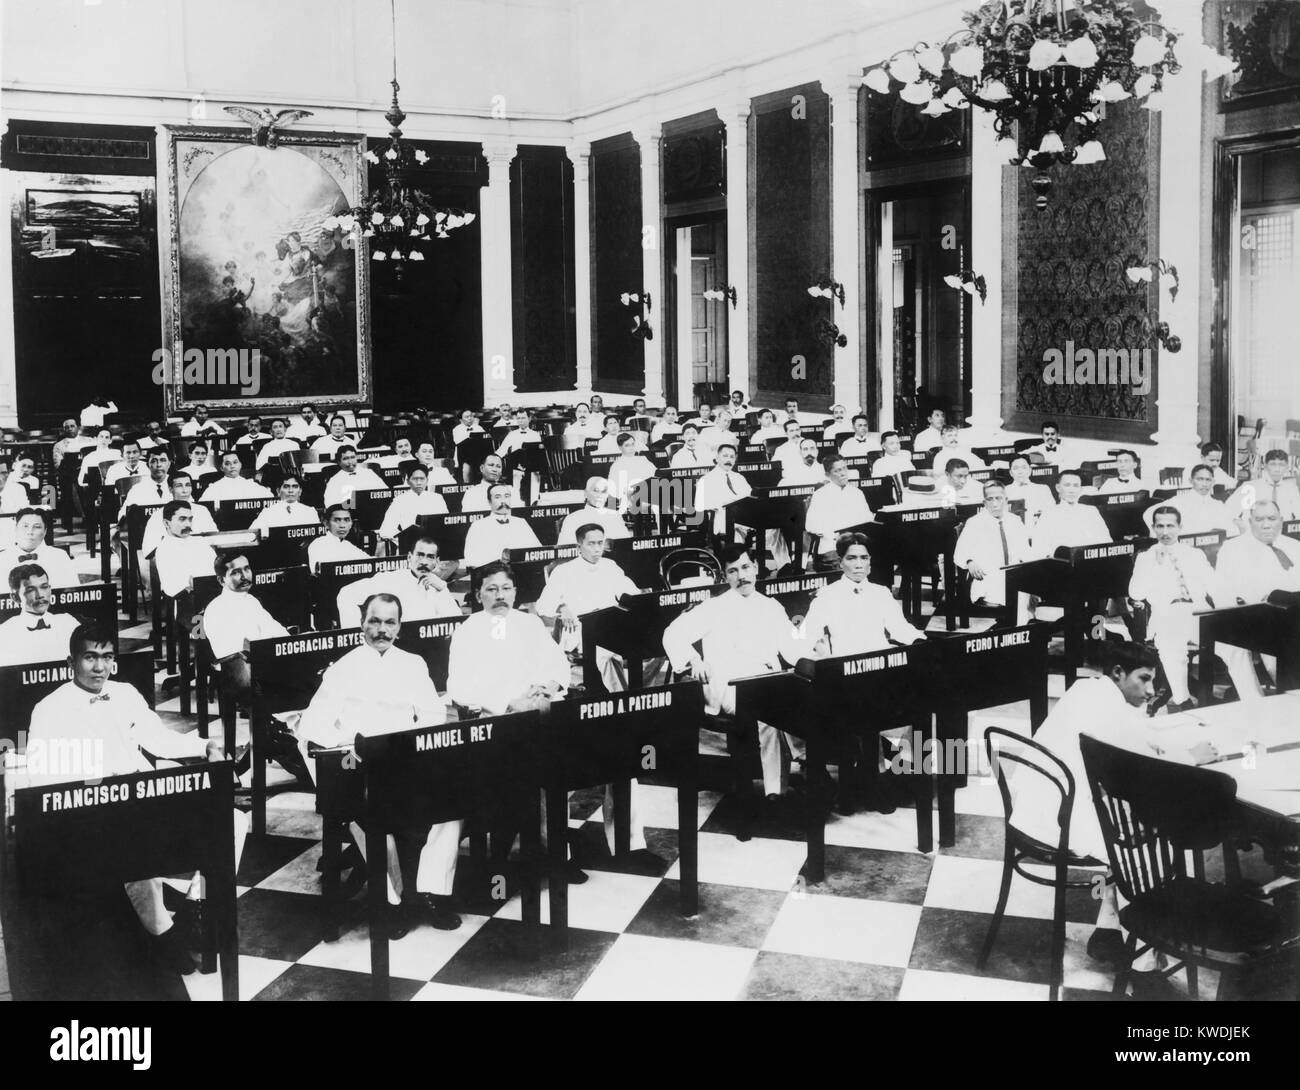 The popularly elected Philippines Assembly in its first session from 1908 to 1911. In 1916 the Philippine Senate - Stock Image